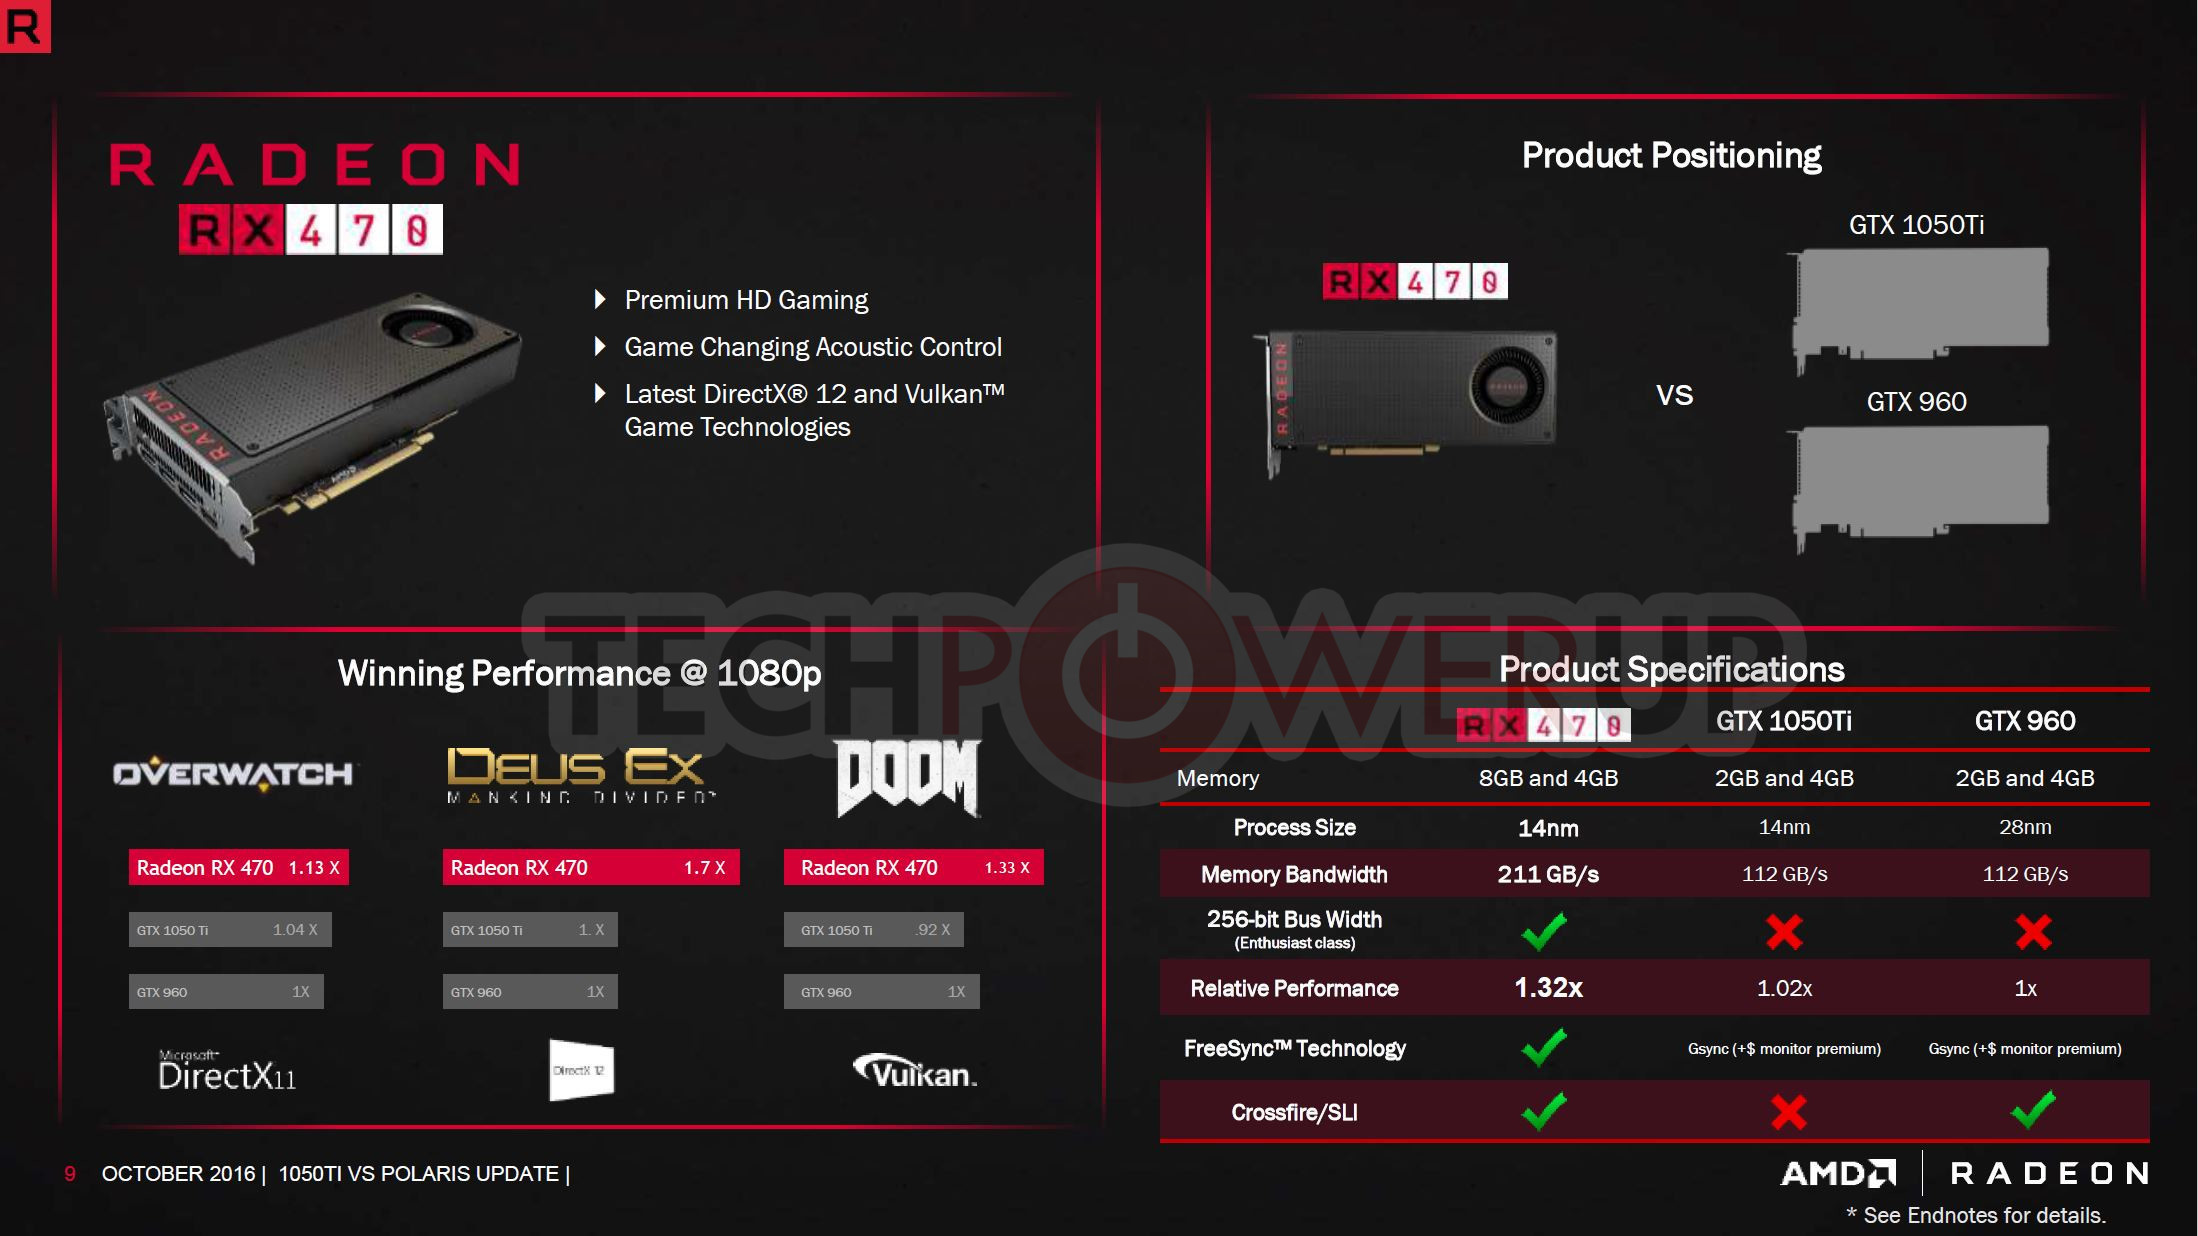 AMD markets their RX 400 series as the best for 1080p gaming